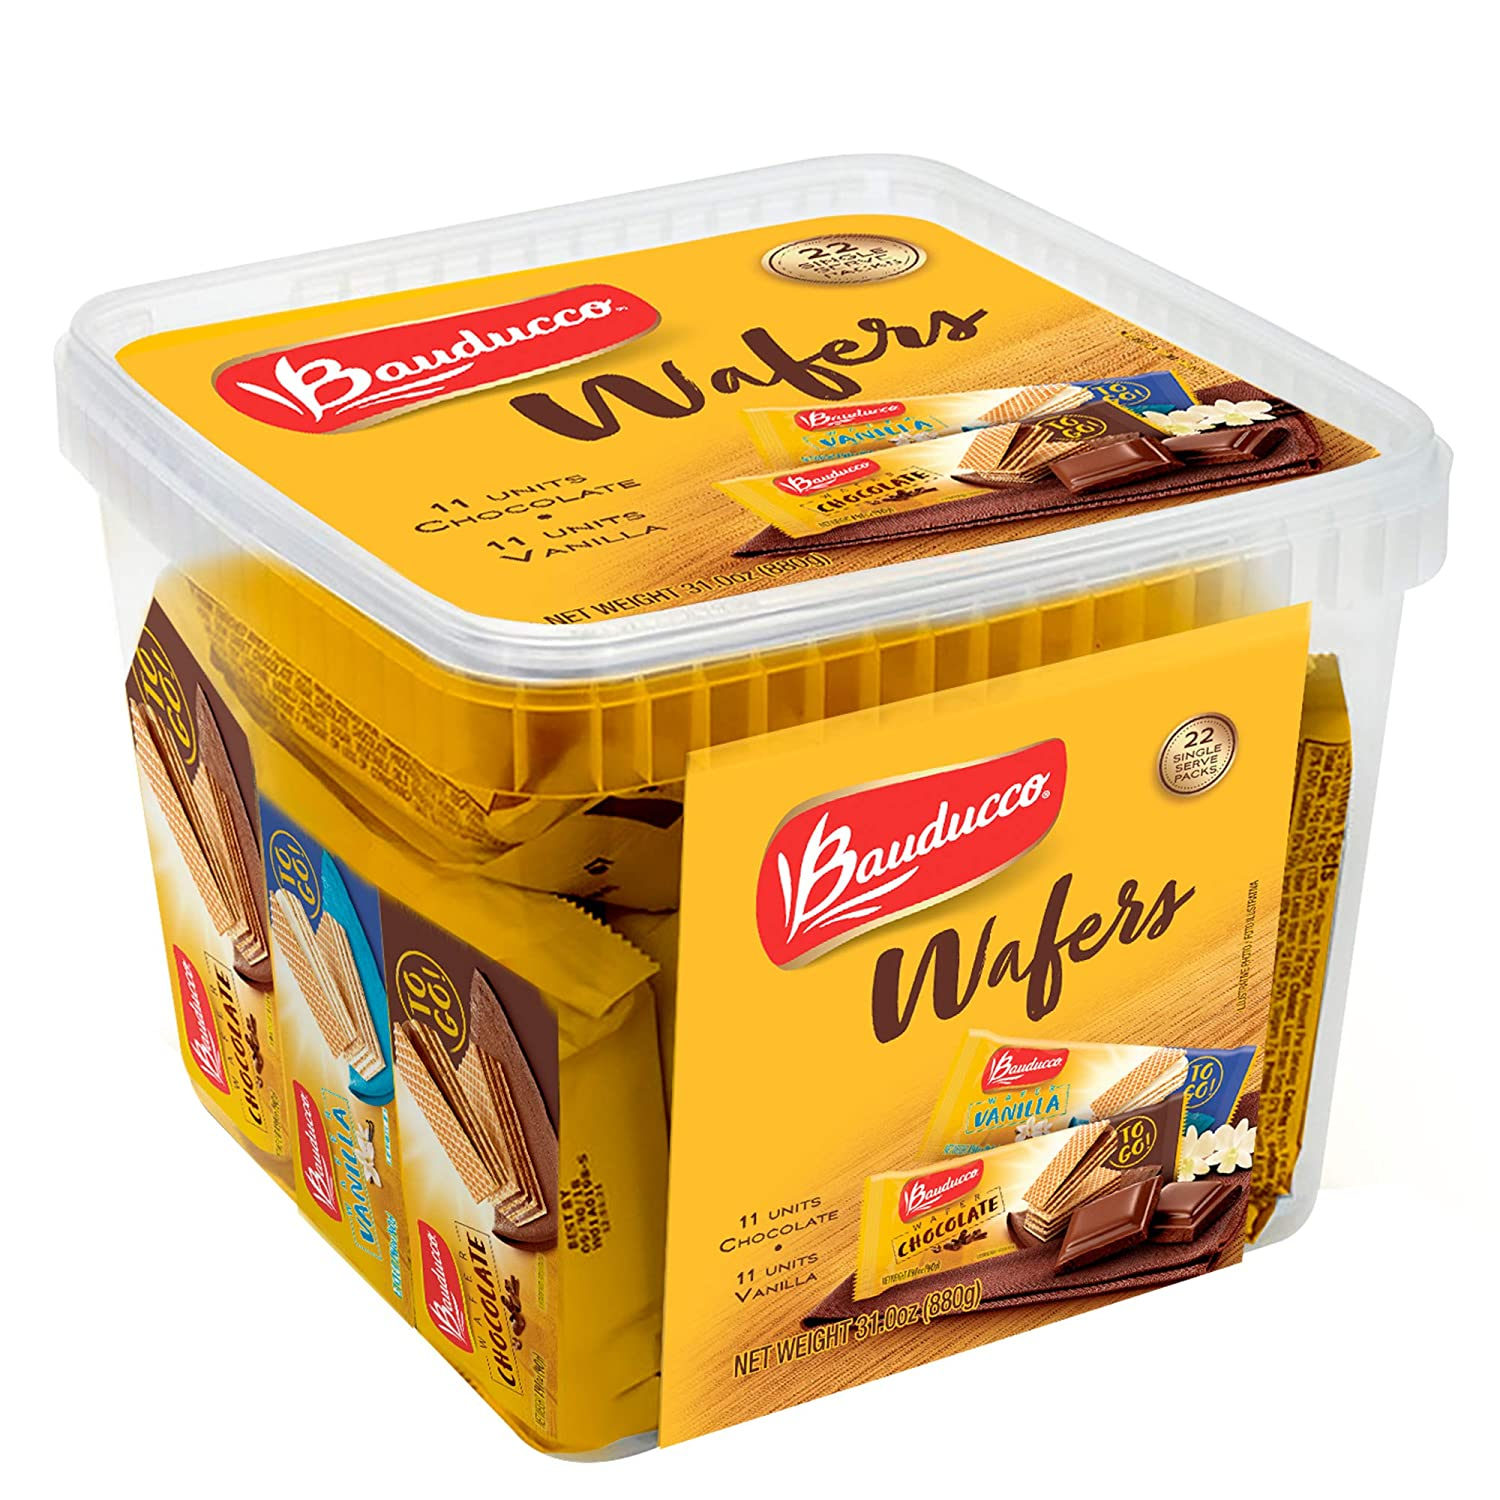 Bauducco Mini Wafer Cookies - Max 87% OFF Chocolate Vanilla with Enriched Be super welcome